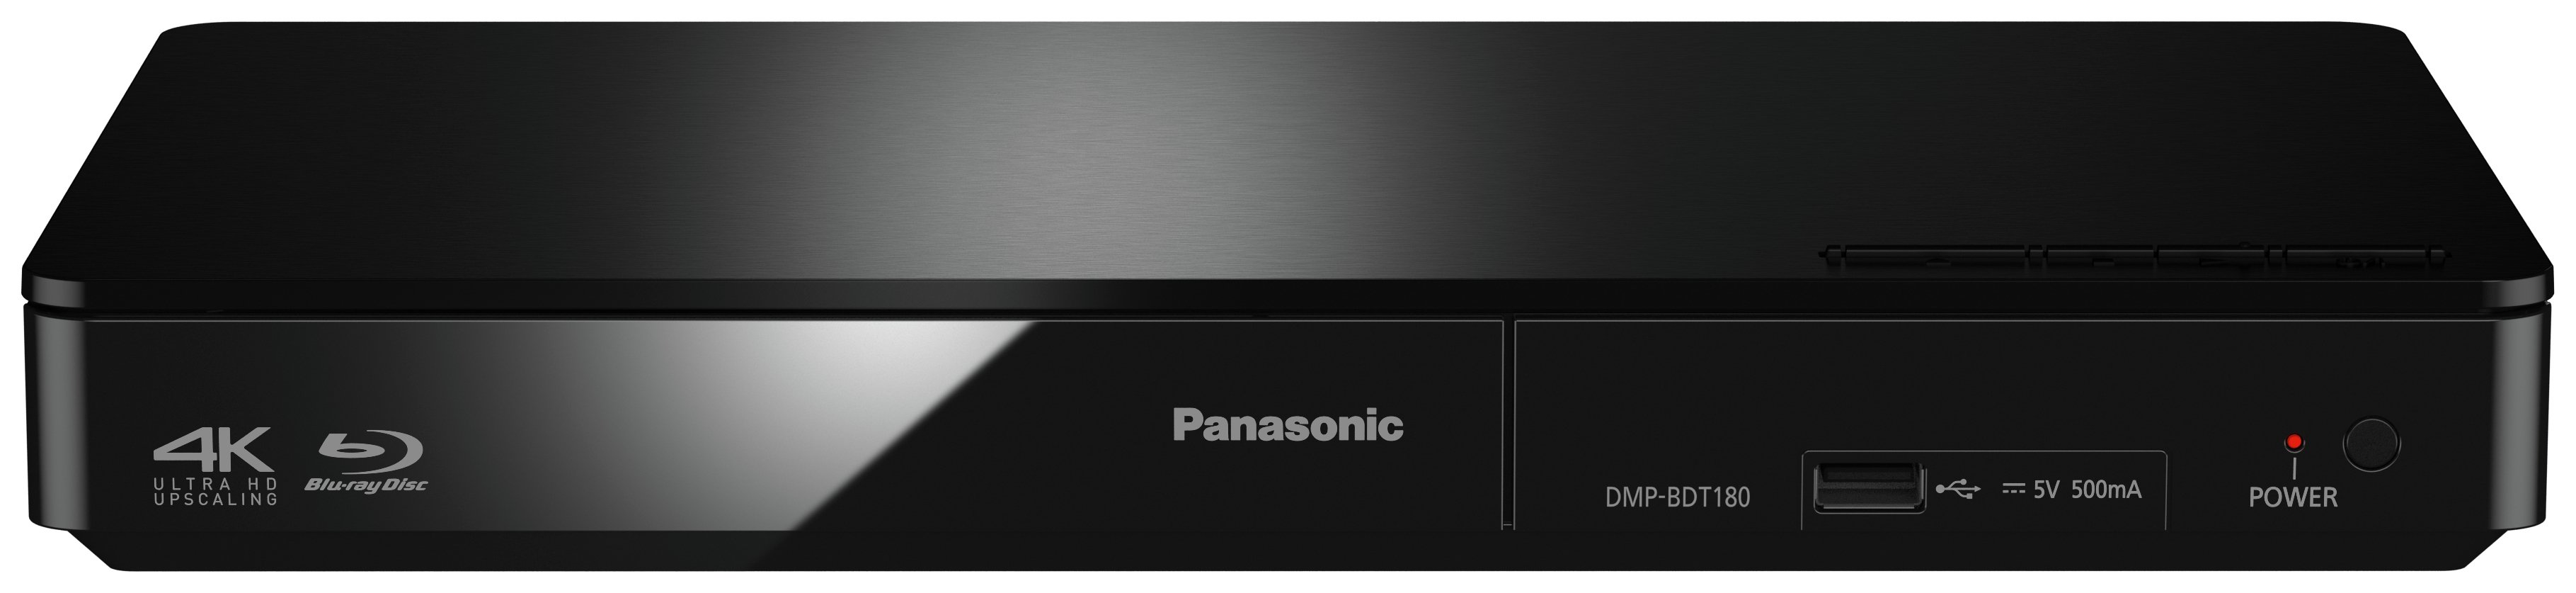 Panasonic - BDT180 - Smart 4K Ready 3D Blu-ray Player.